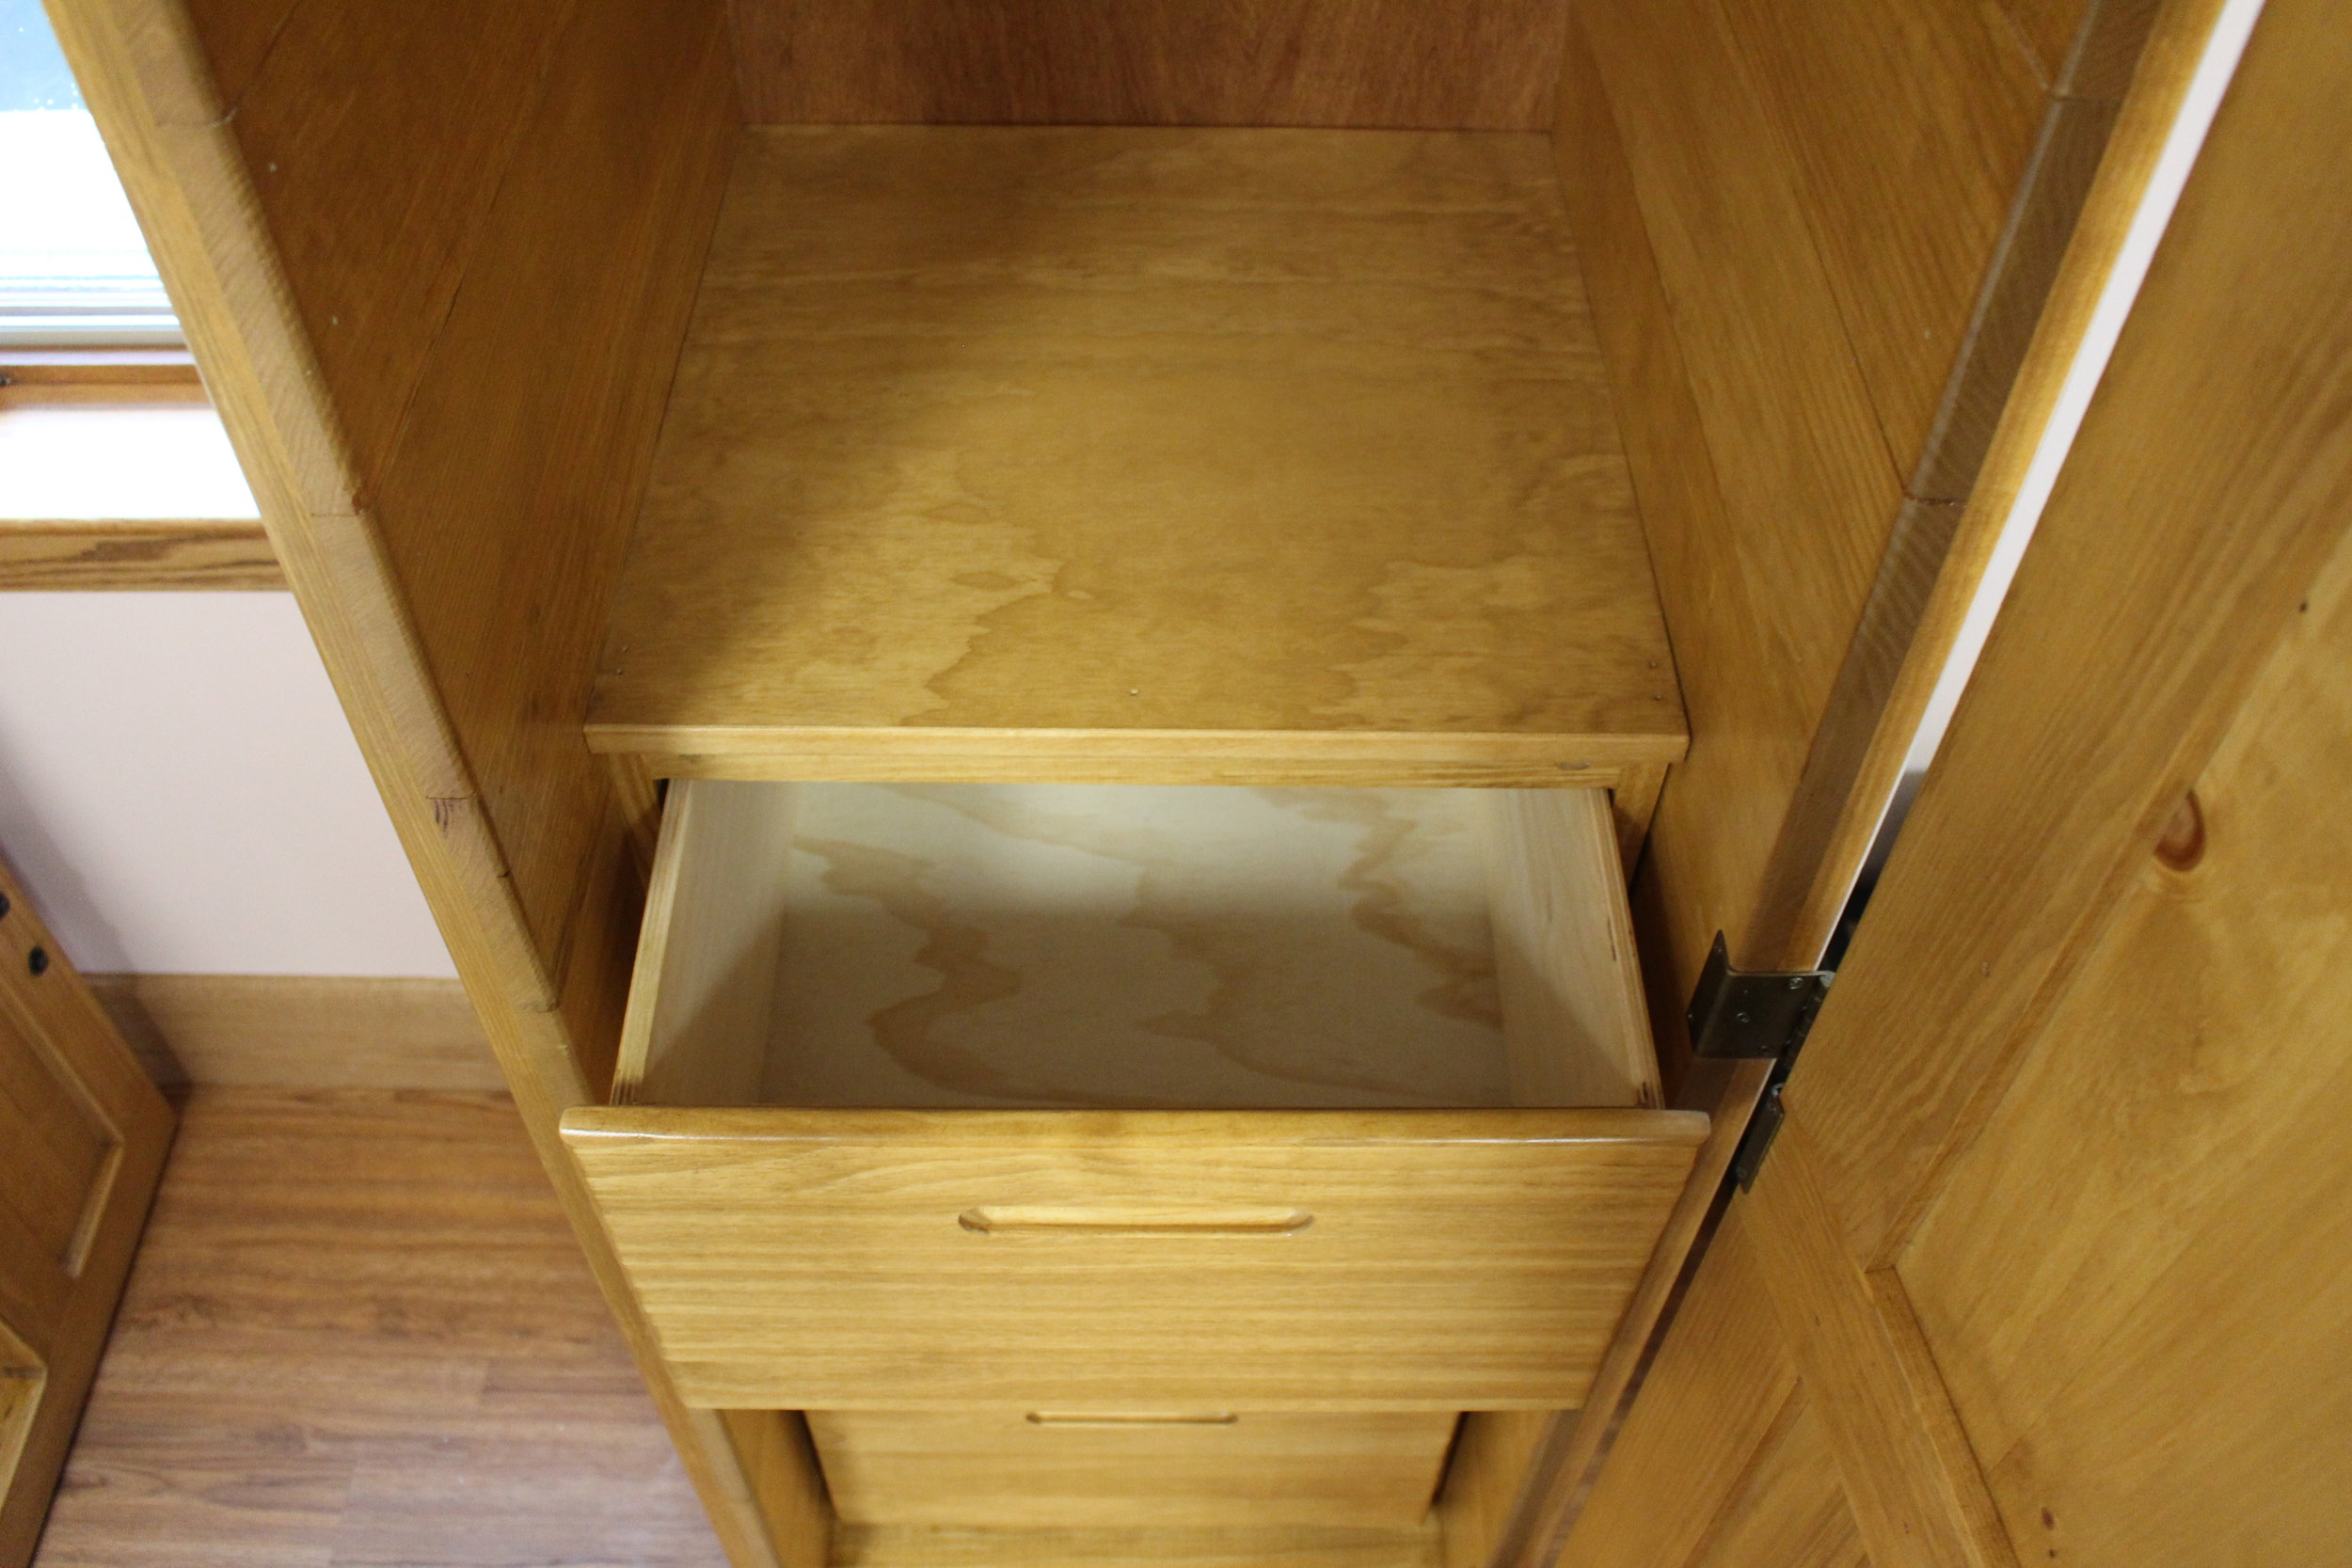 Wardrobe with Wooden Drawer Box (no metal hardware)